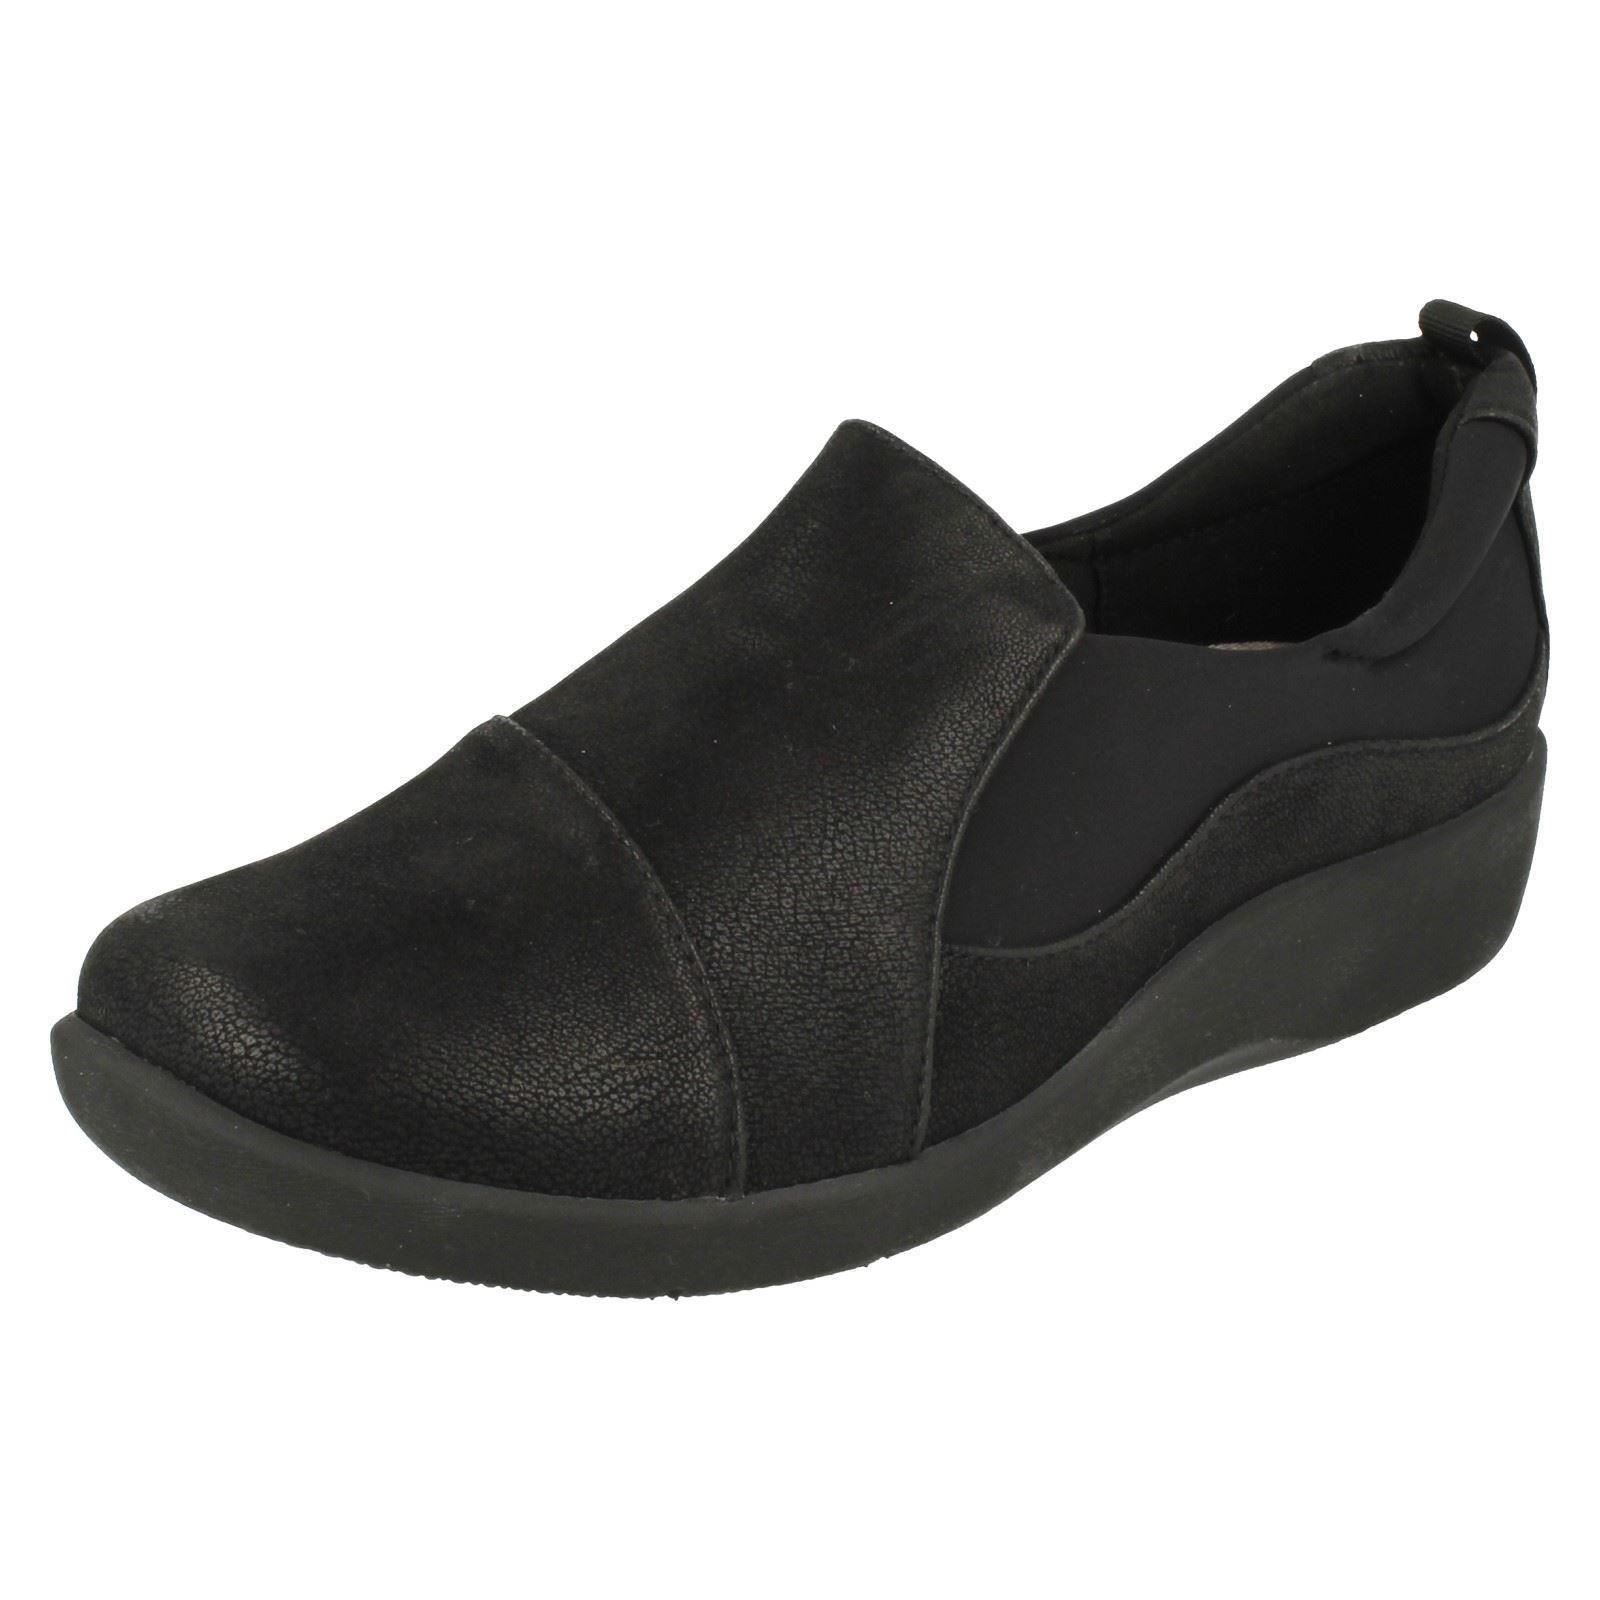 c045f46ba198e Ladies Clarks Cloudsteppers Casual Slip on Shoes Sillian Paz Black 4 UK E.  About this product. Picture 1 of 10  Picture 2 of 10 ...